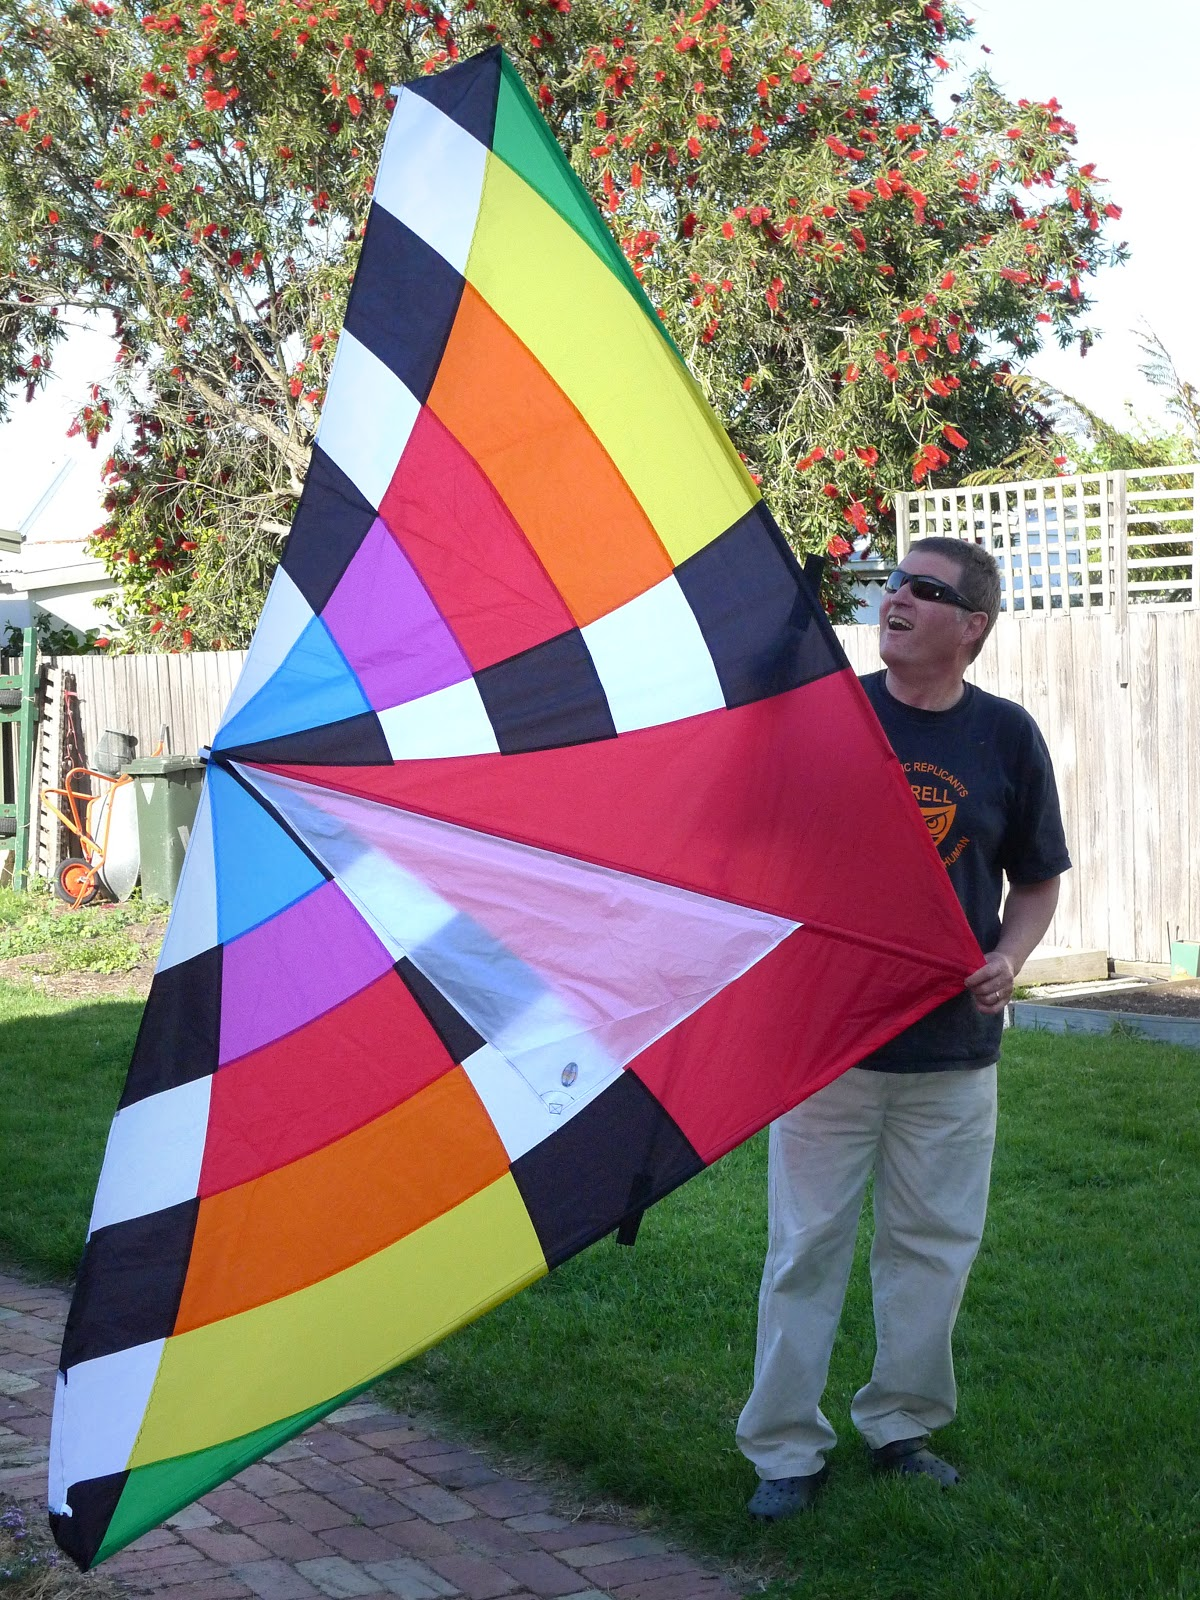 Kite Reasearch Kirstens Art Website Delta Diagram Ben Franklin Of Picture I Like This Because It Has Pretty Colors In